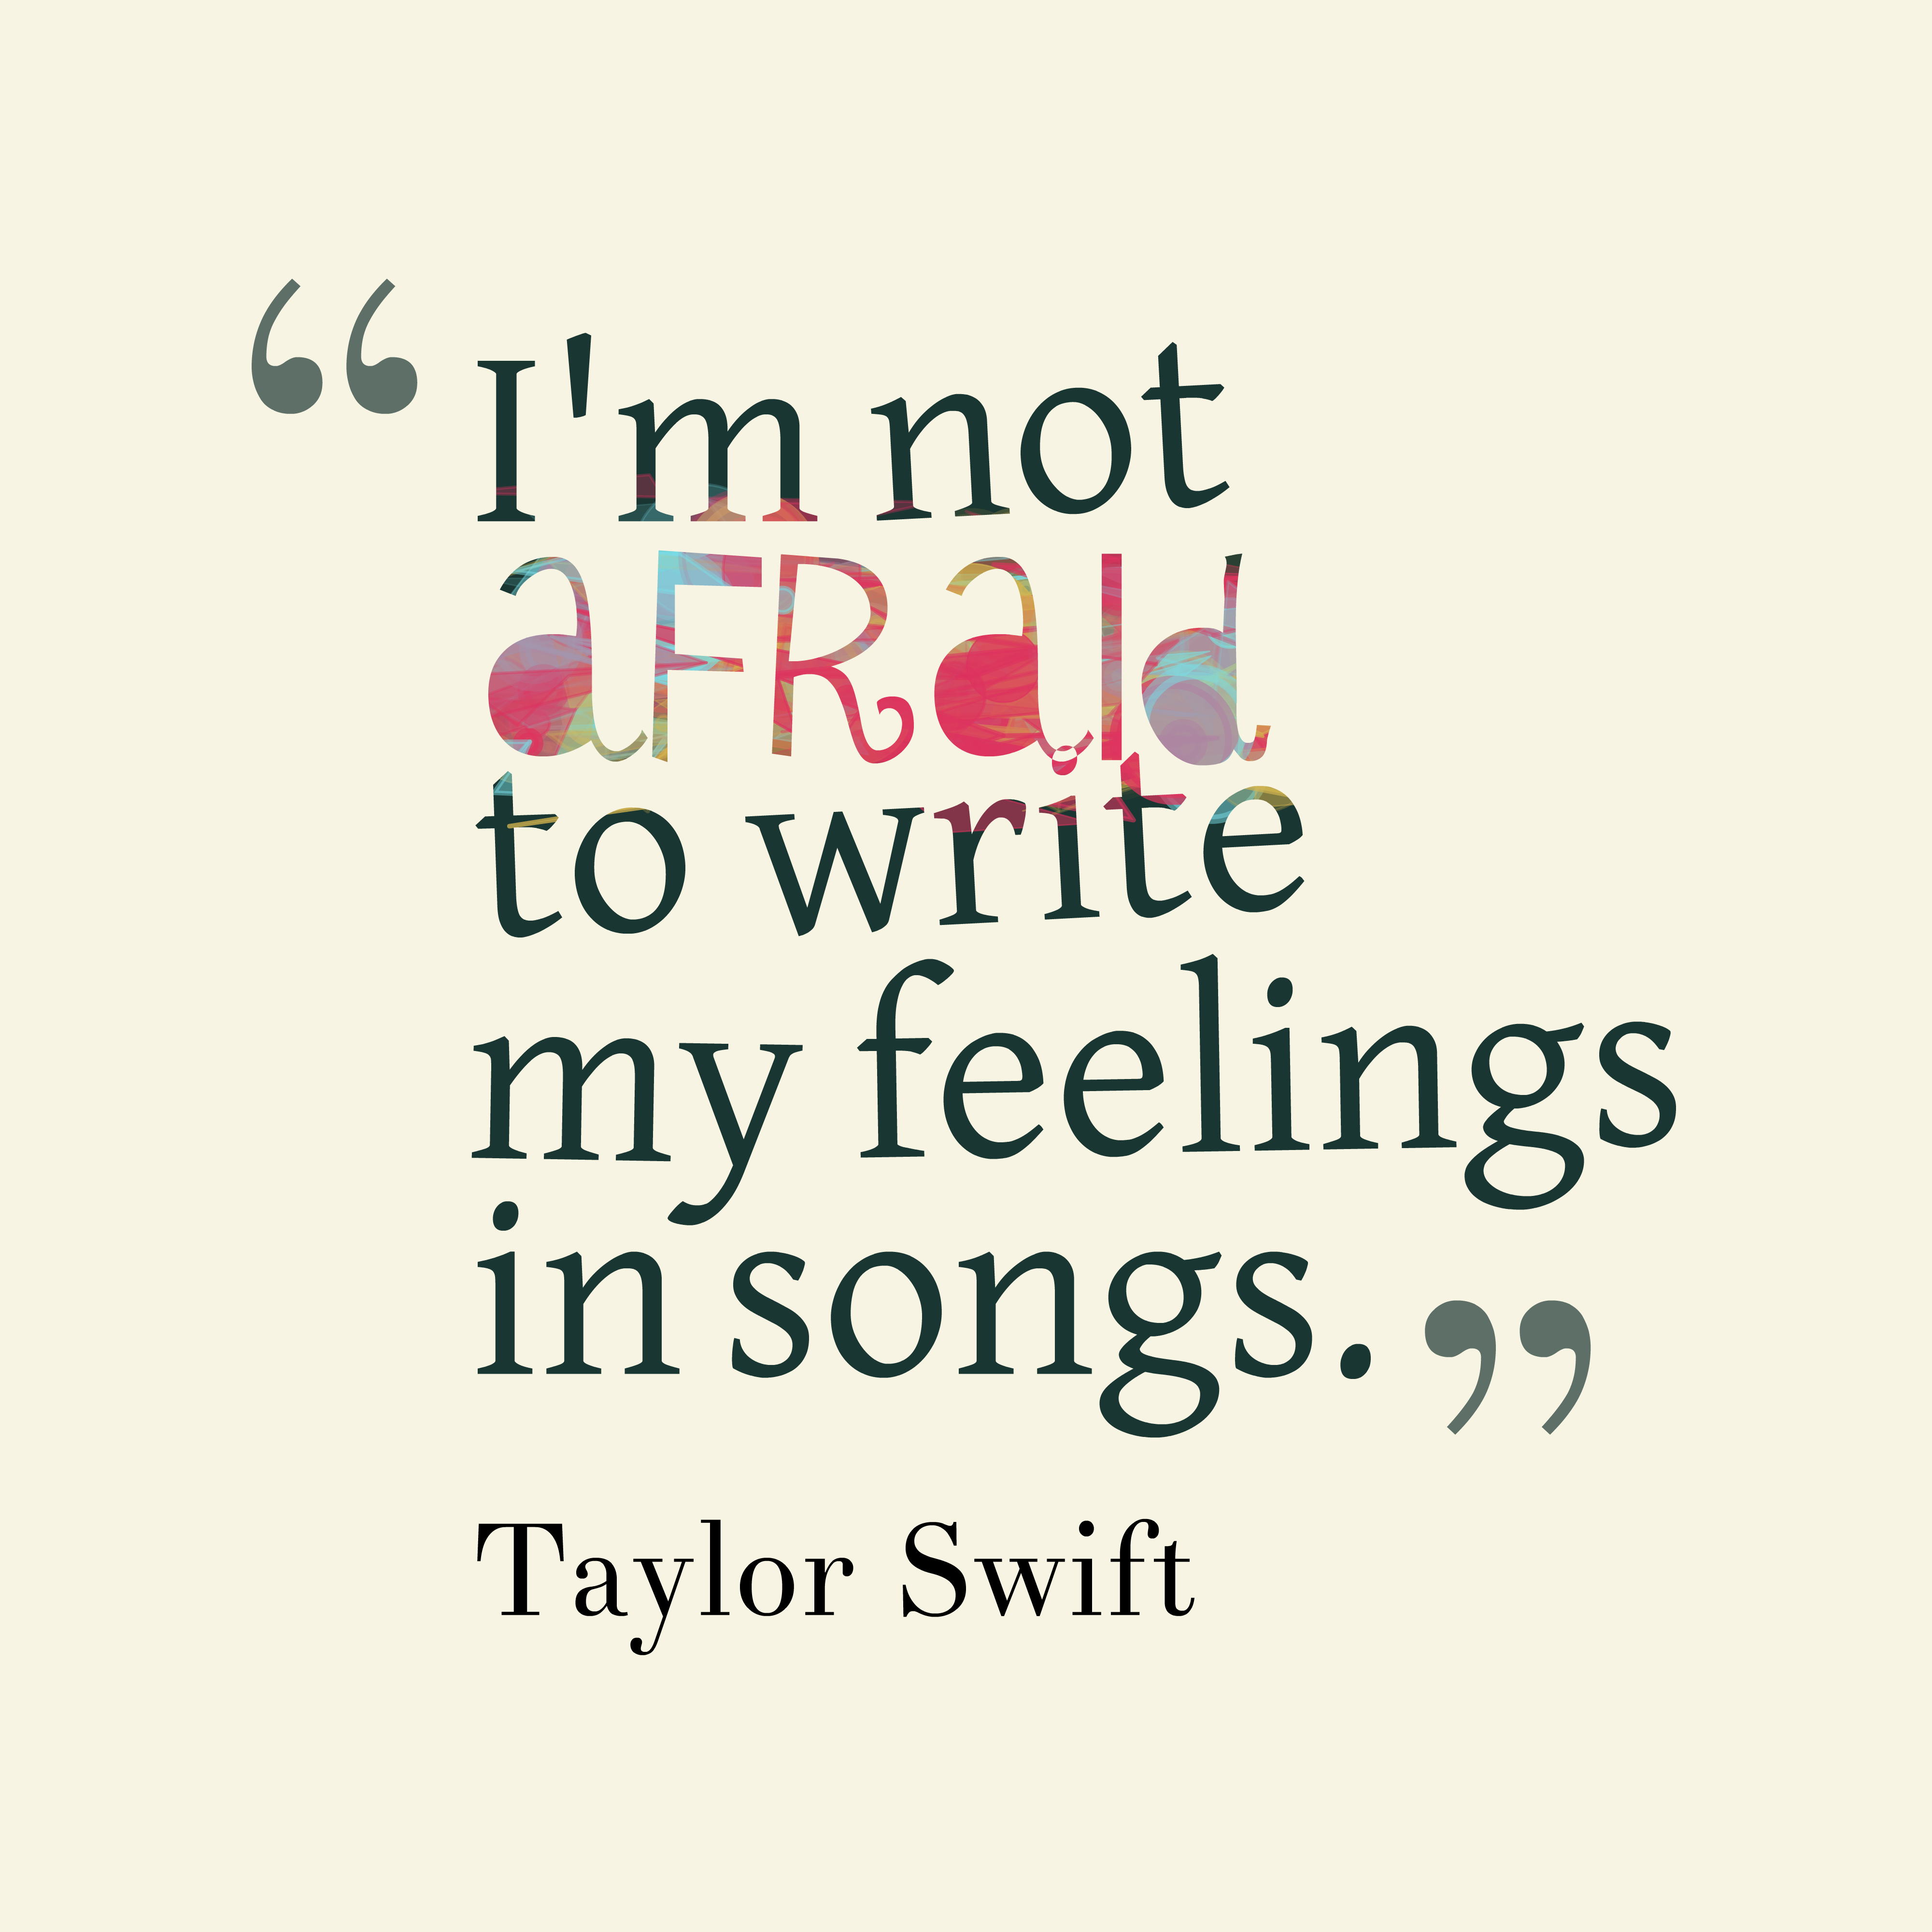 Taylor Swift Quote About Music